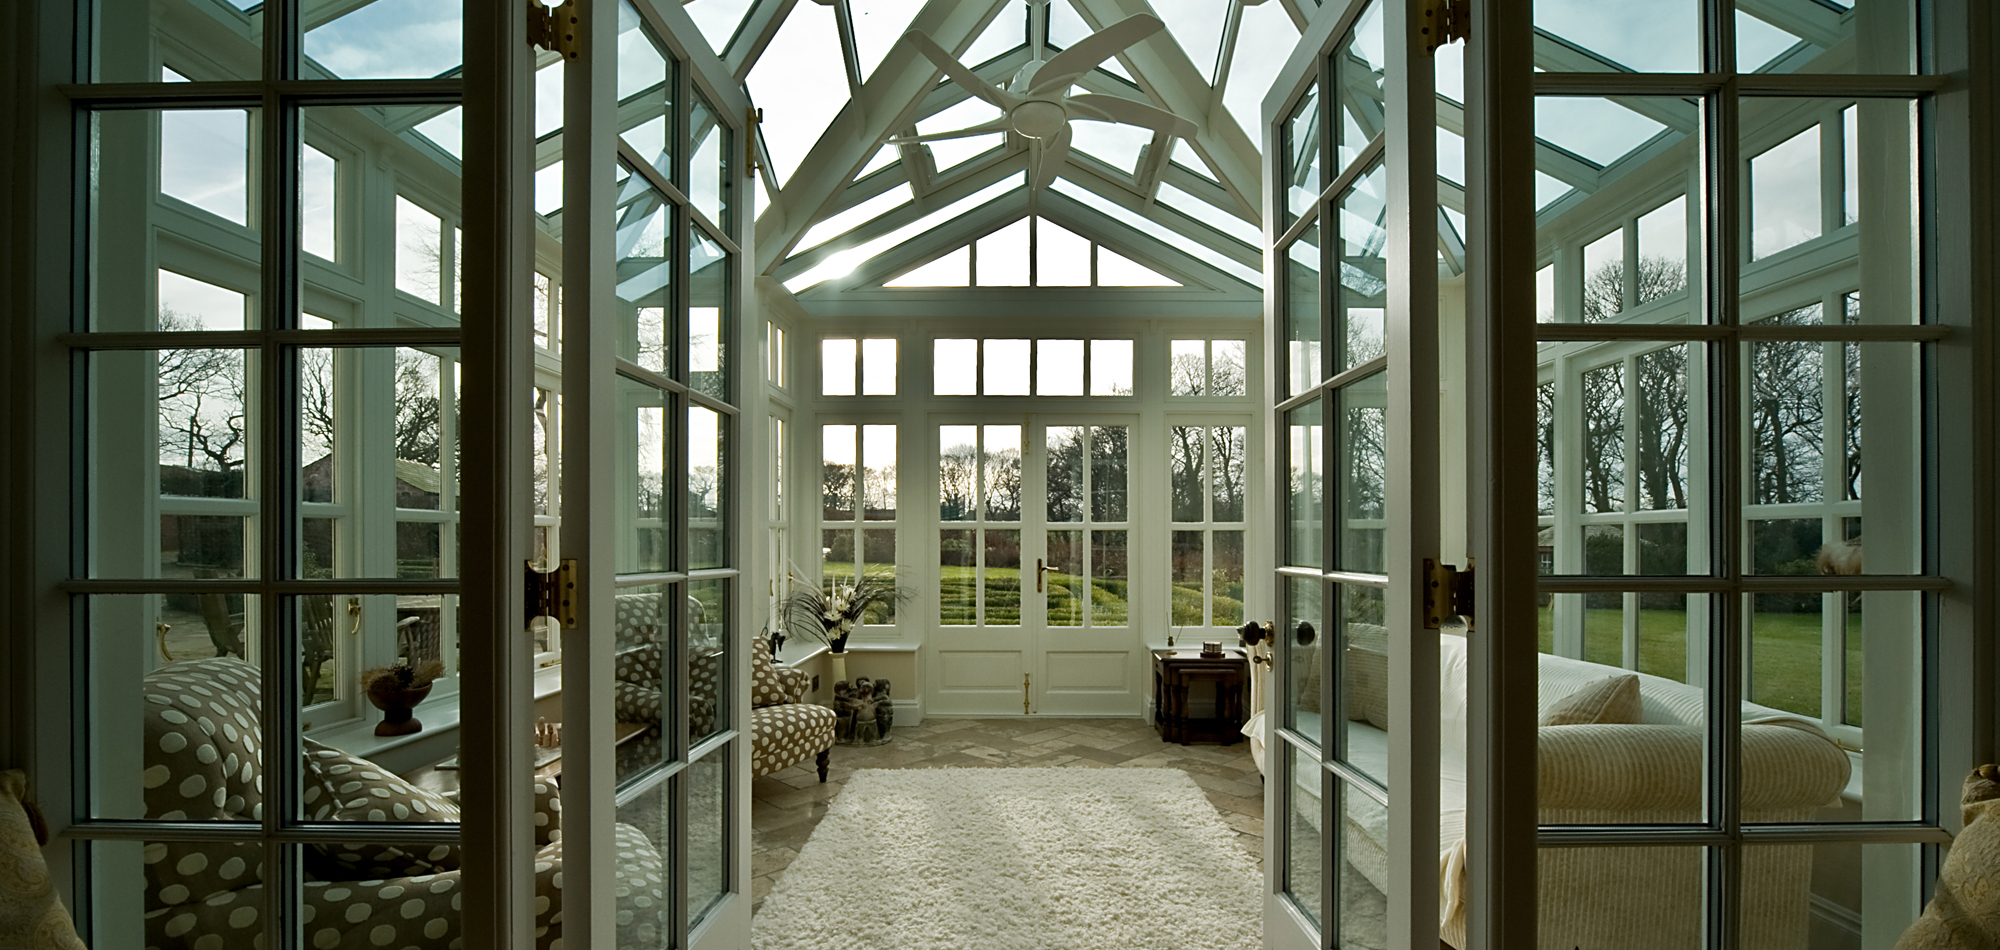 Brackenwood Conservatories